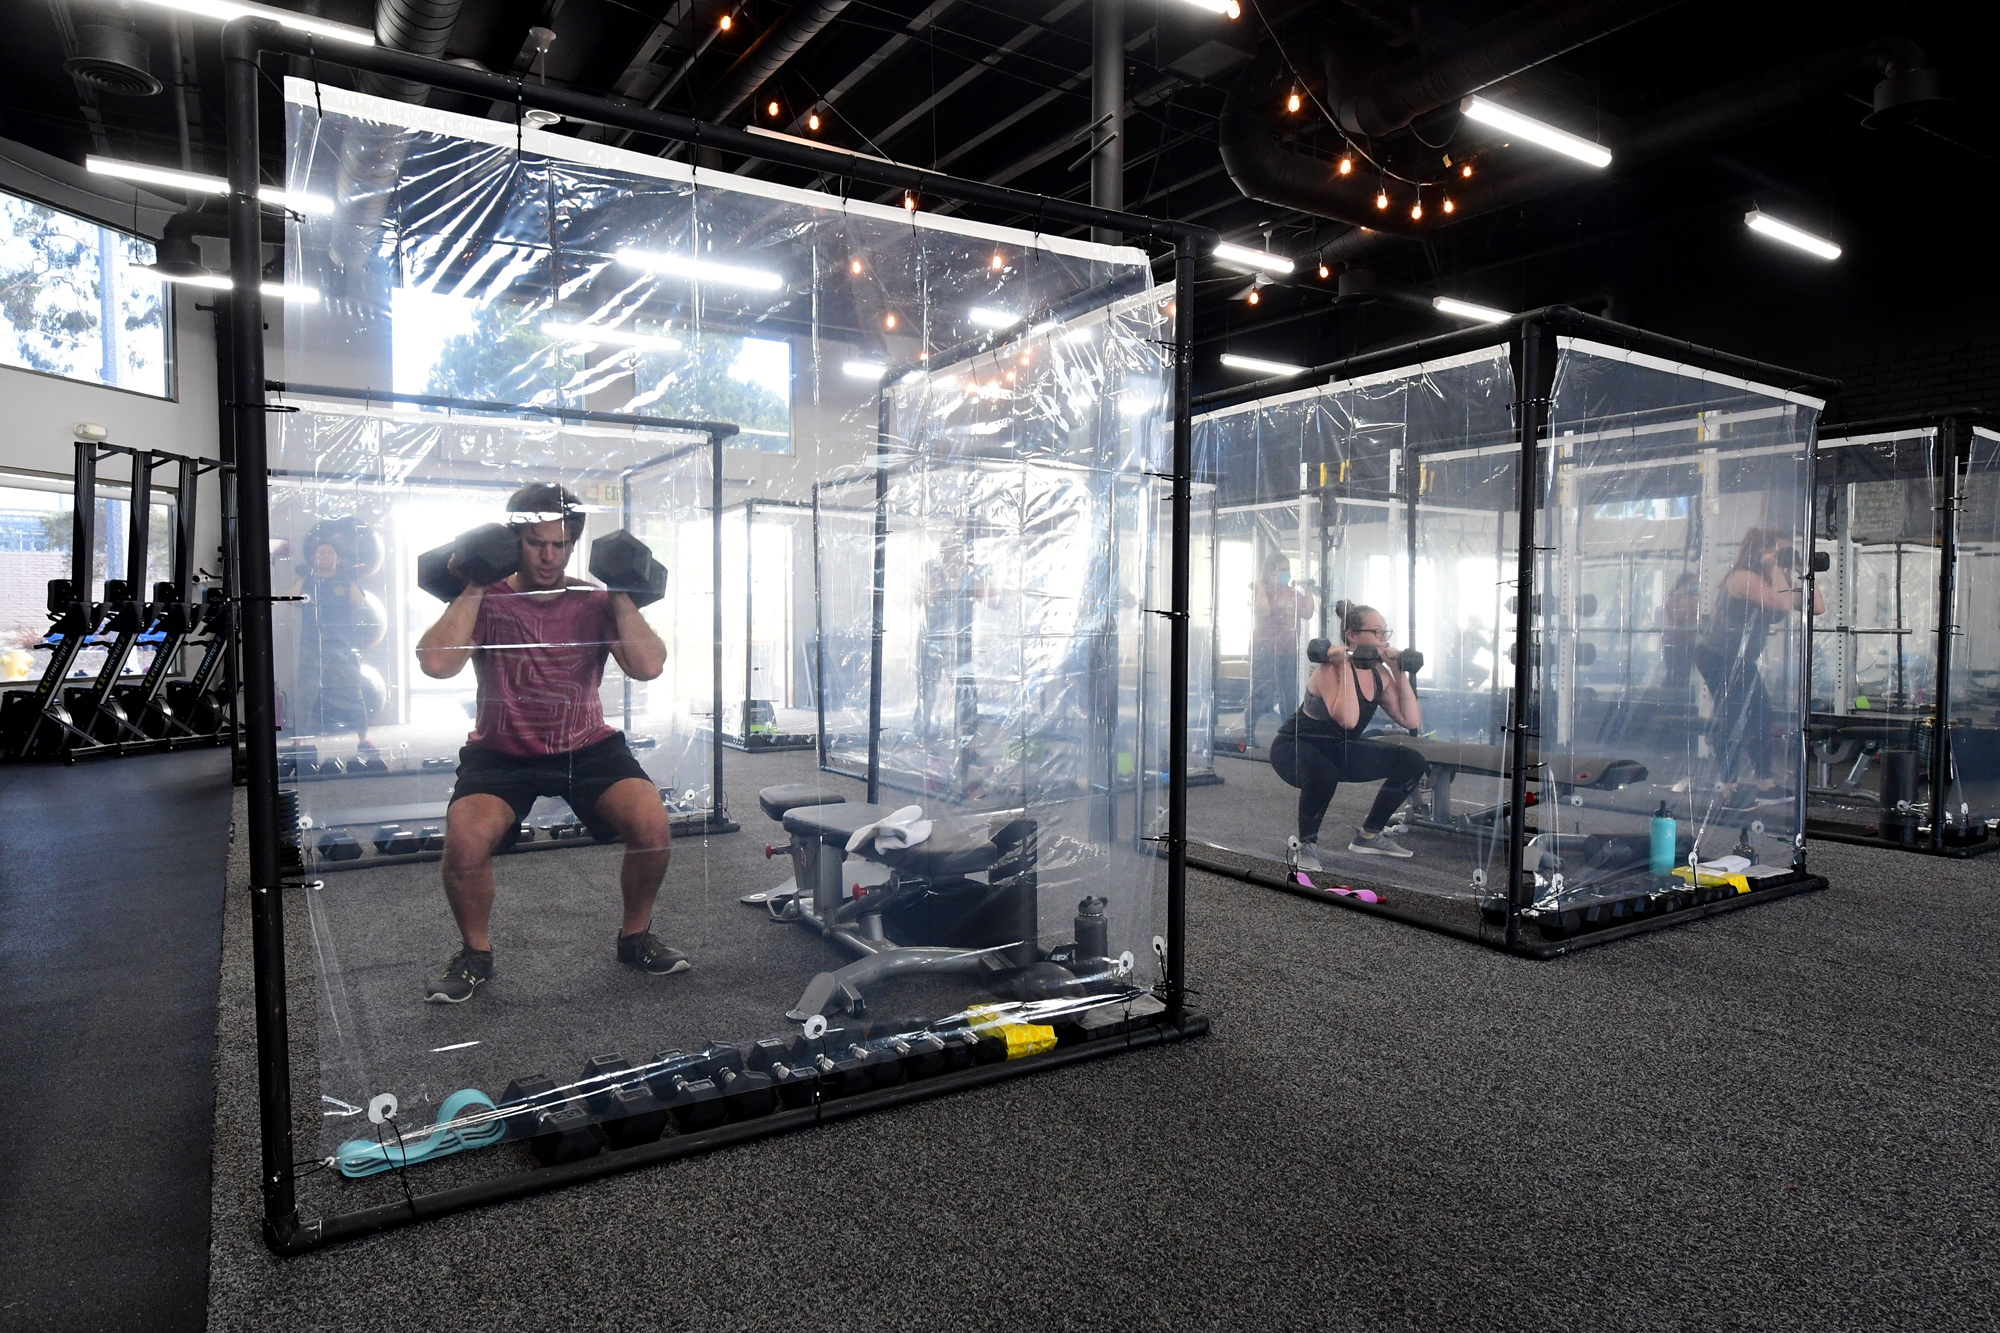 People exercise at Inspire South Bay Fitness behind plastic sheets